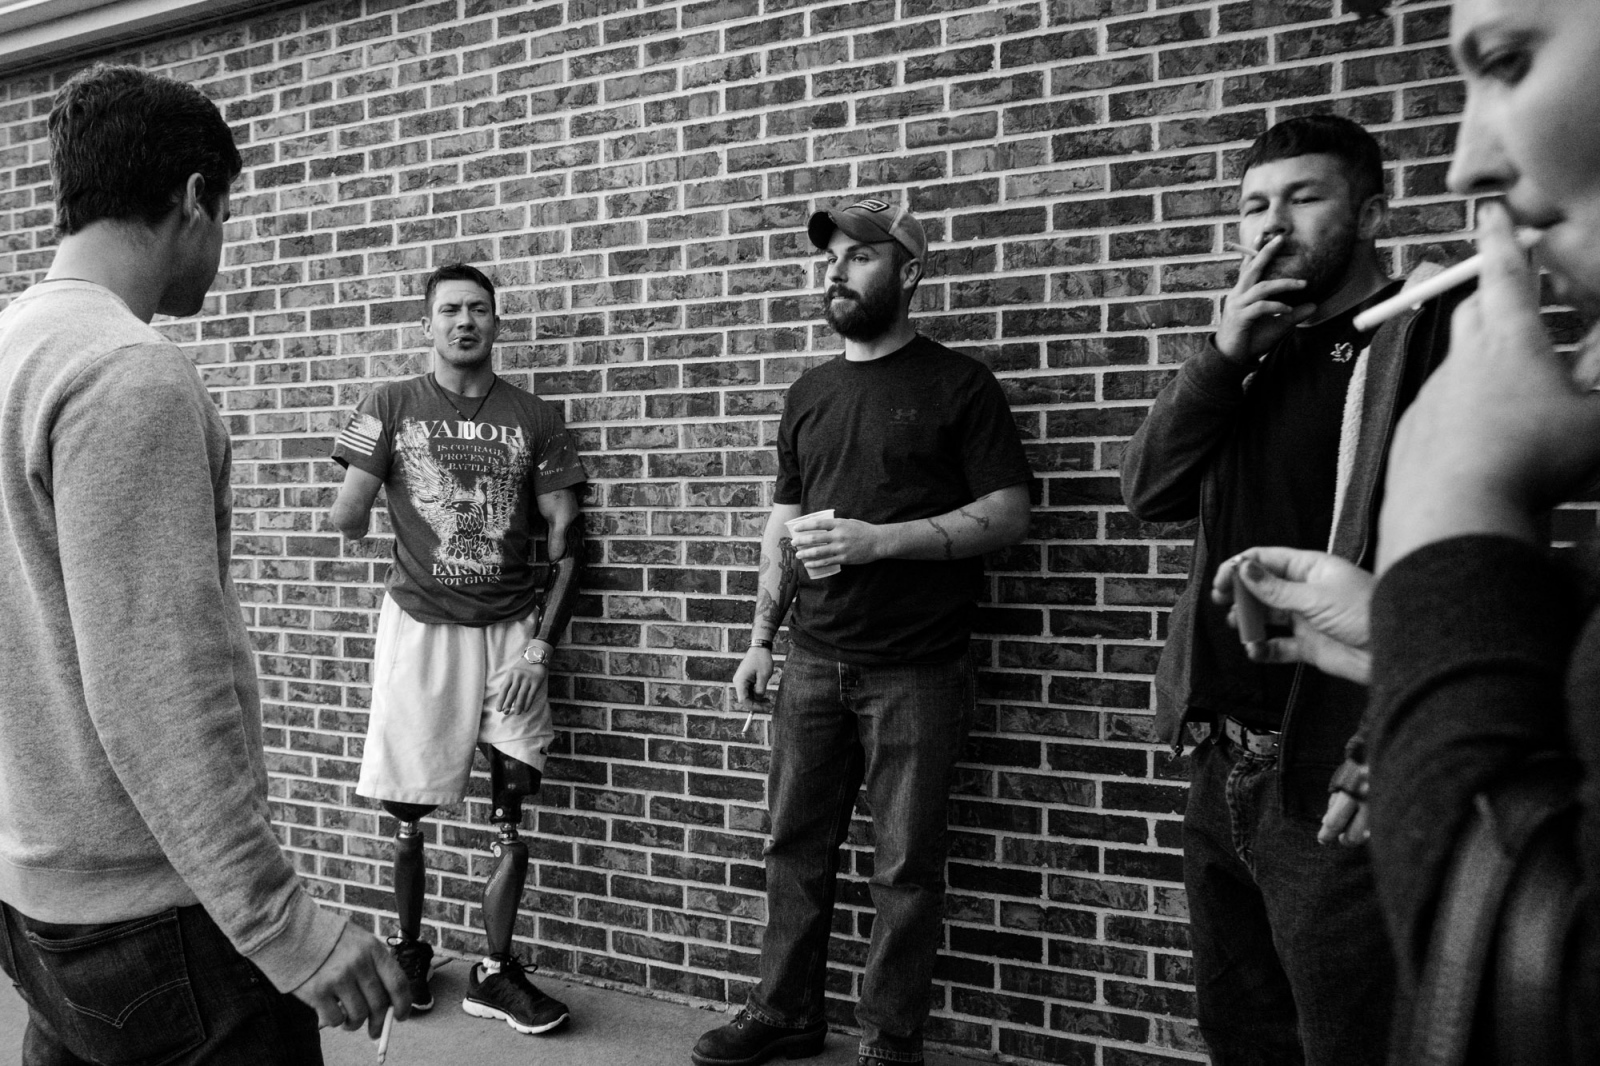 St. Louis, Missouri, USA, 2016. Todd Nicely, at the Joshua Chamberlain charity event with his brother in arms, on his left, Sean Harrigan who saved him after he was severely injured by the IED.